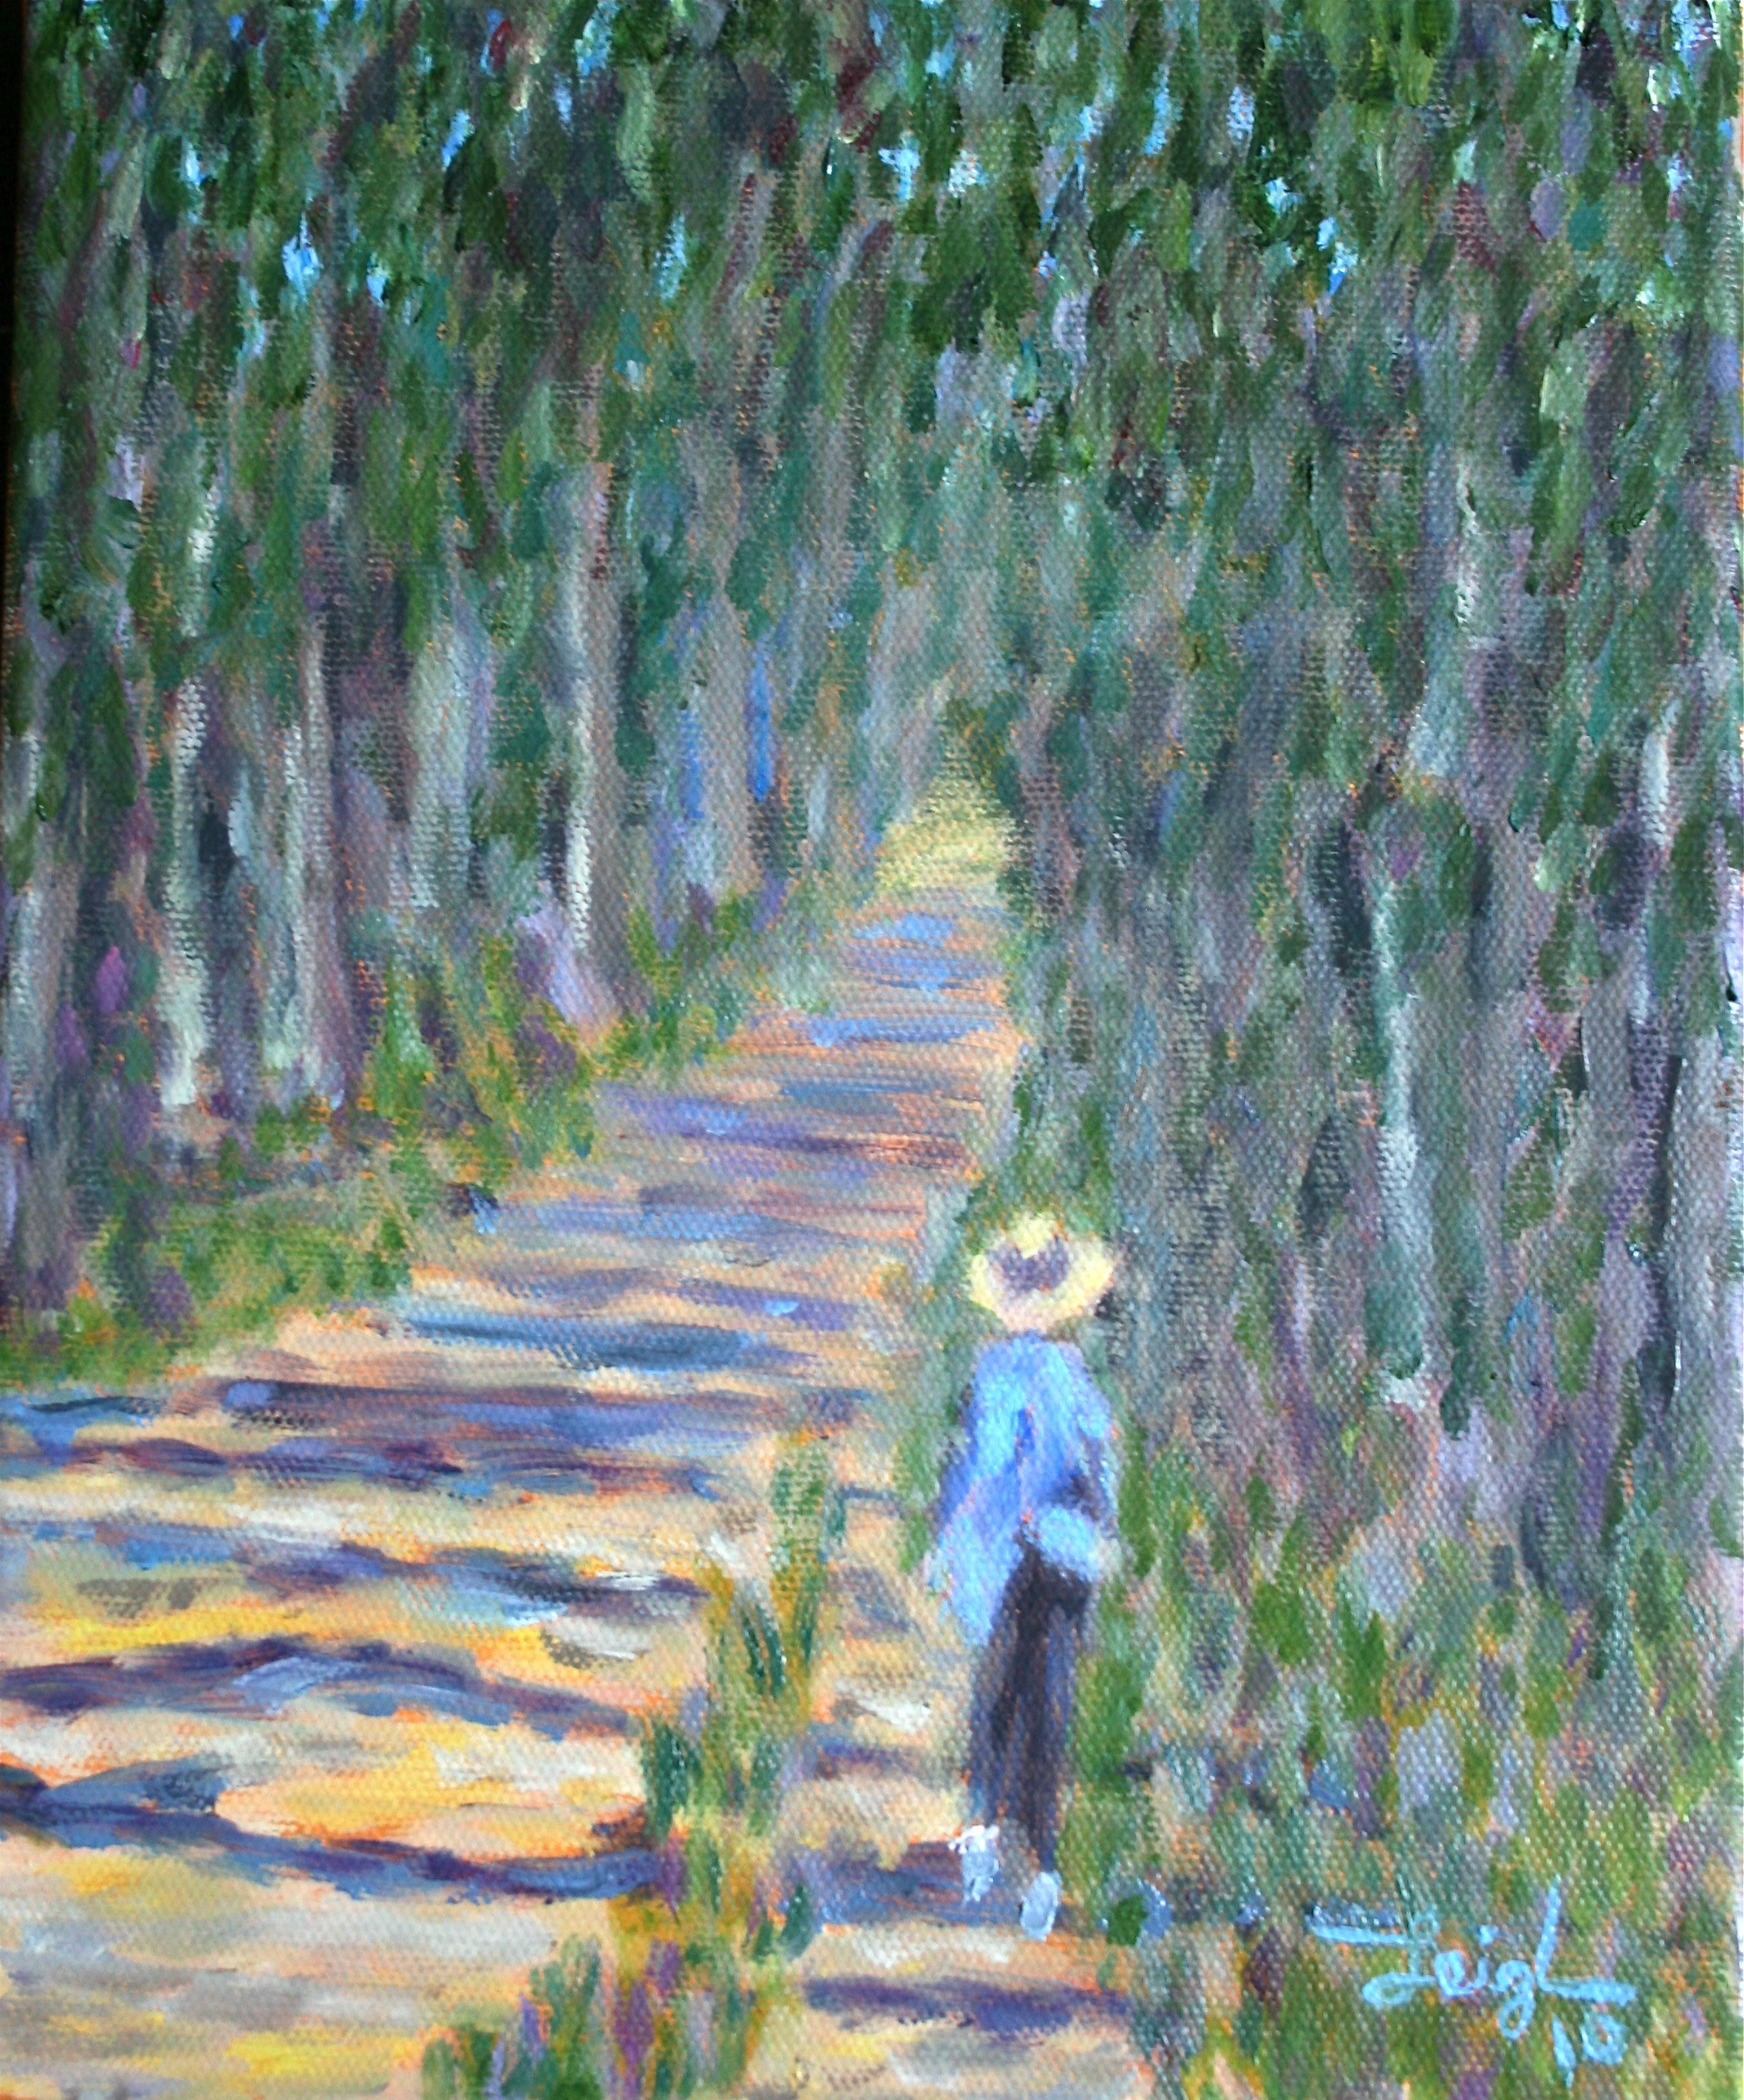 Lindsey on the Path  ~   Stacie McEntyre, Durham, NC  2010 • 8 x 10